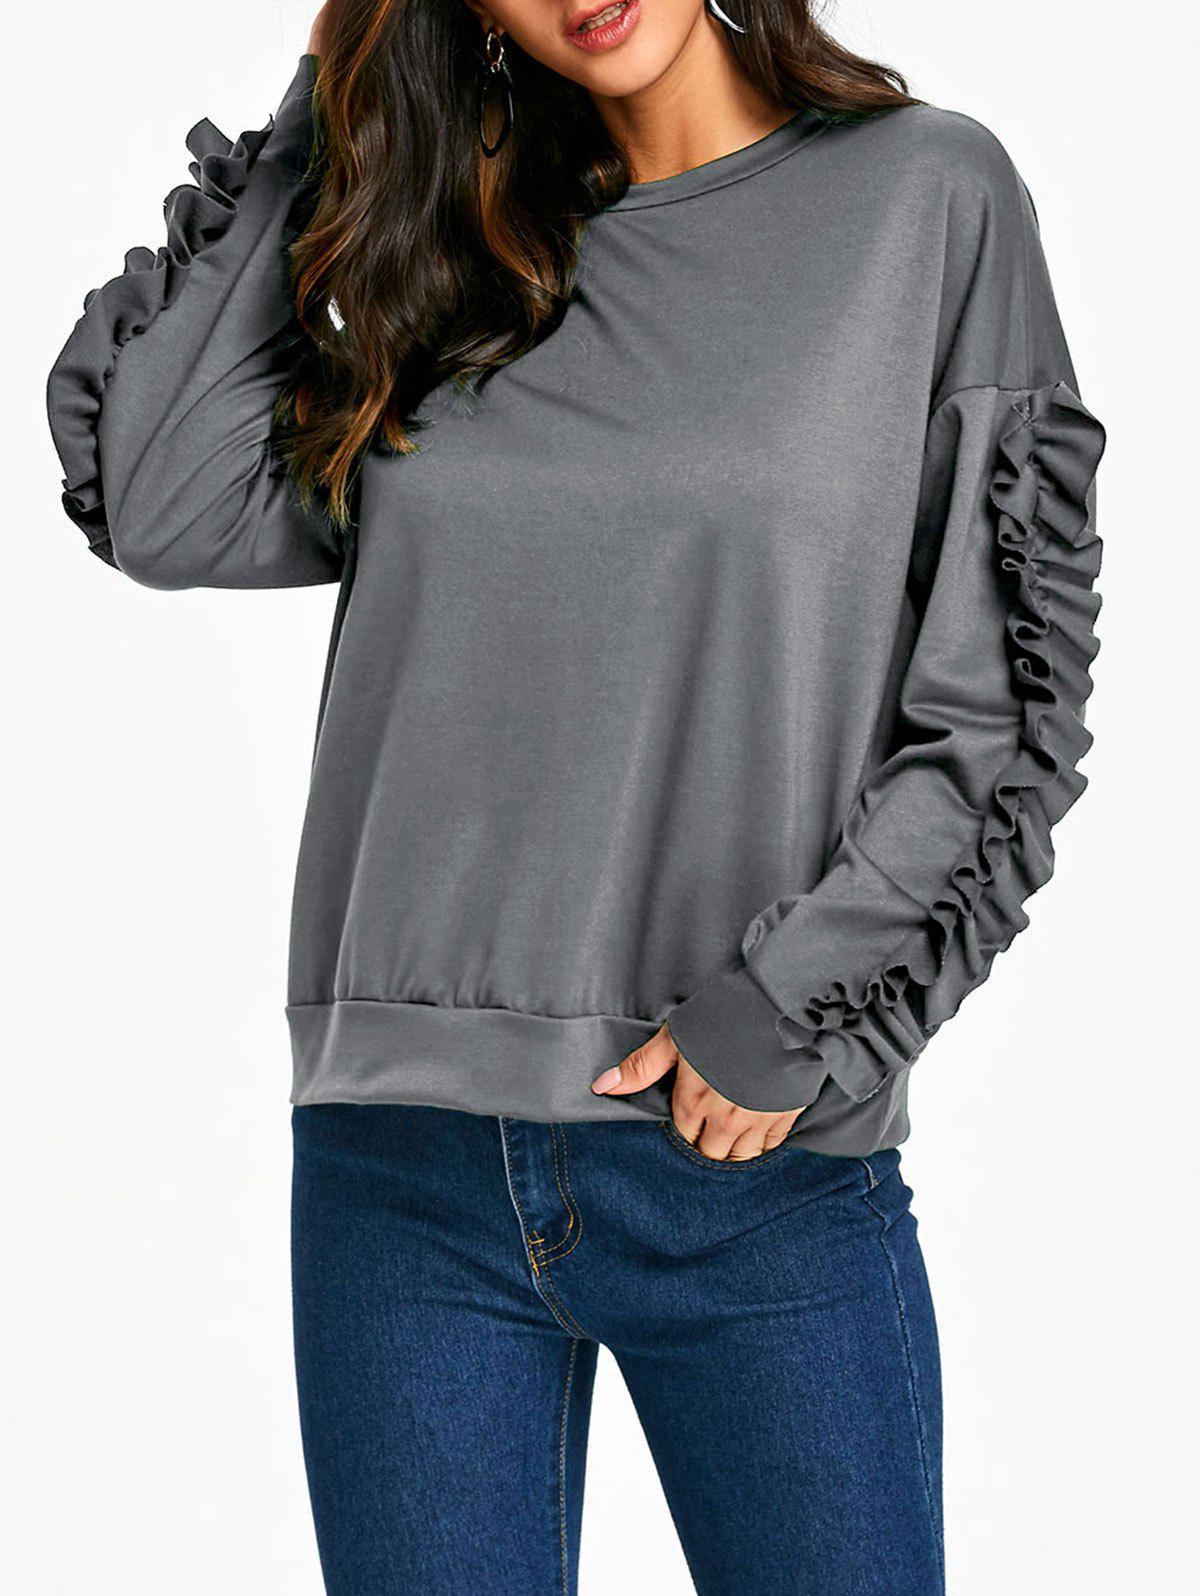 Drop Shoulder Ruffles Sleeve Sweatshirt - GRAY L